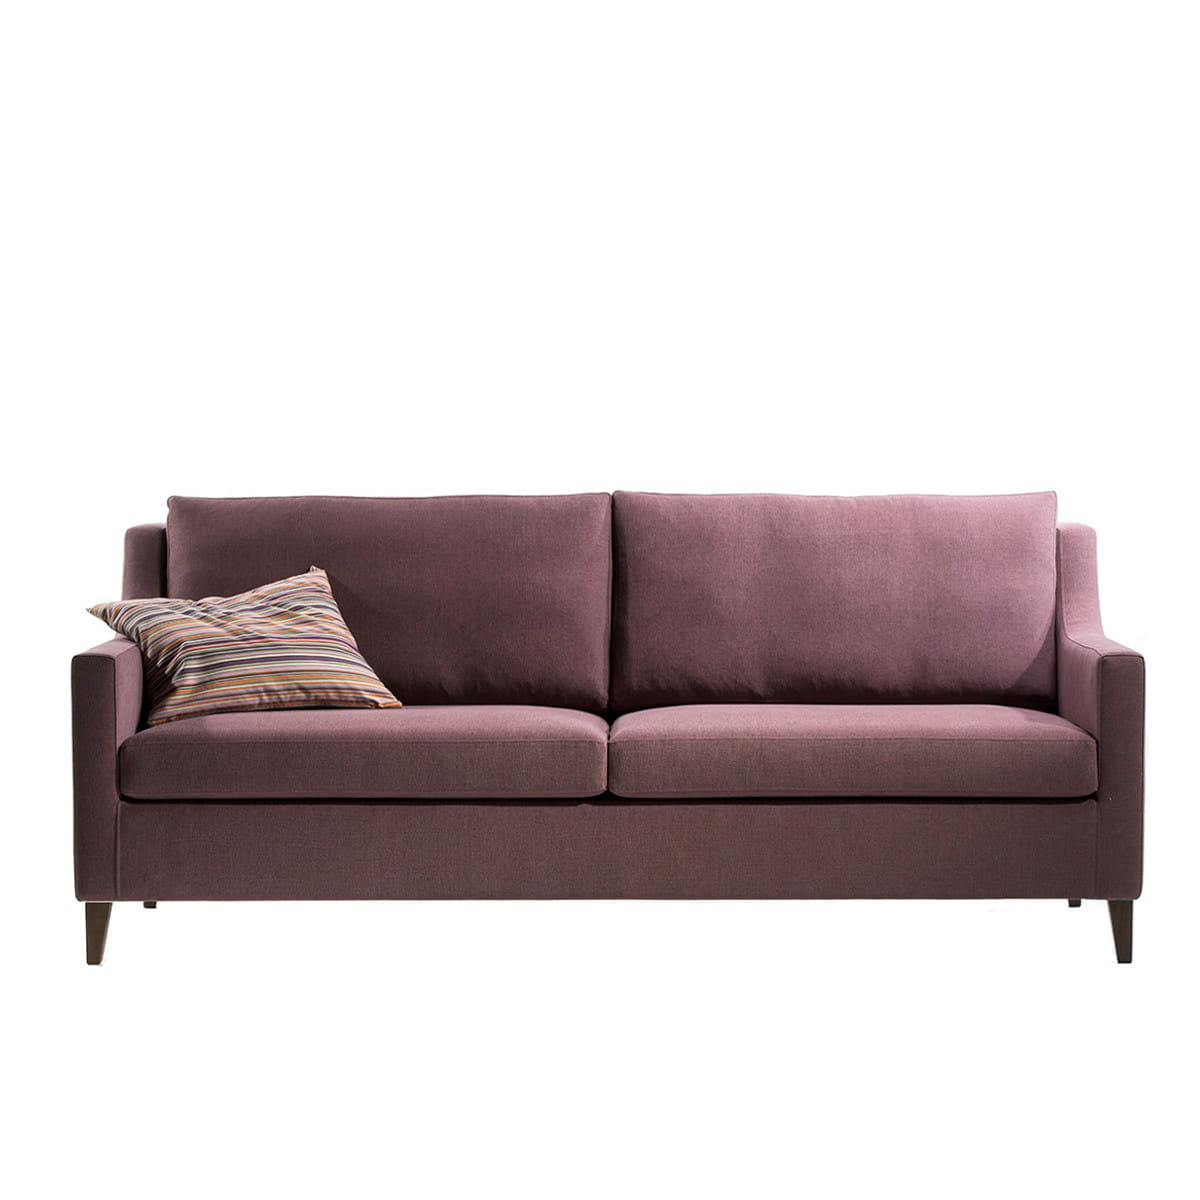 Sofa club large 3 osobowa 200 cm cena od nordic for Couch 200 cm